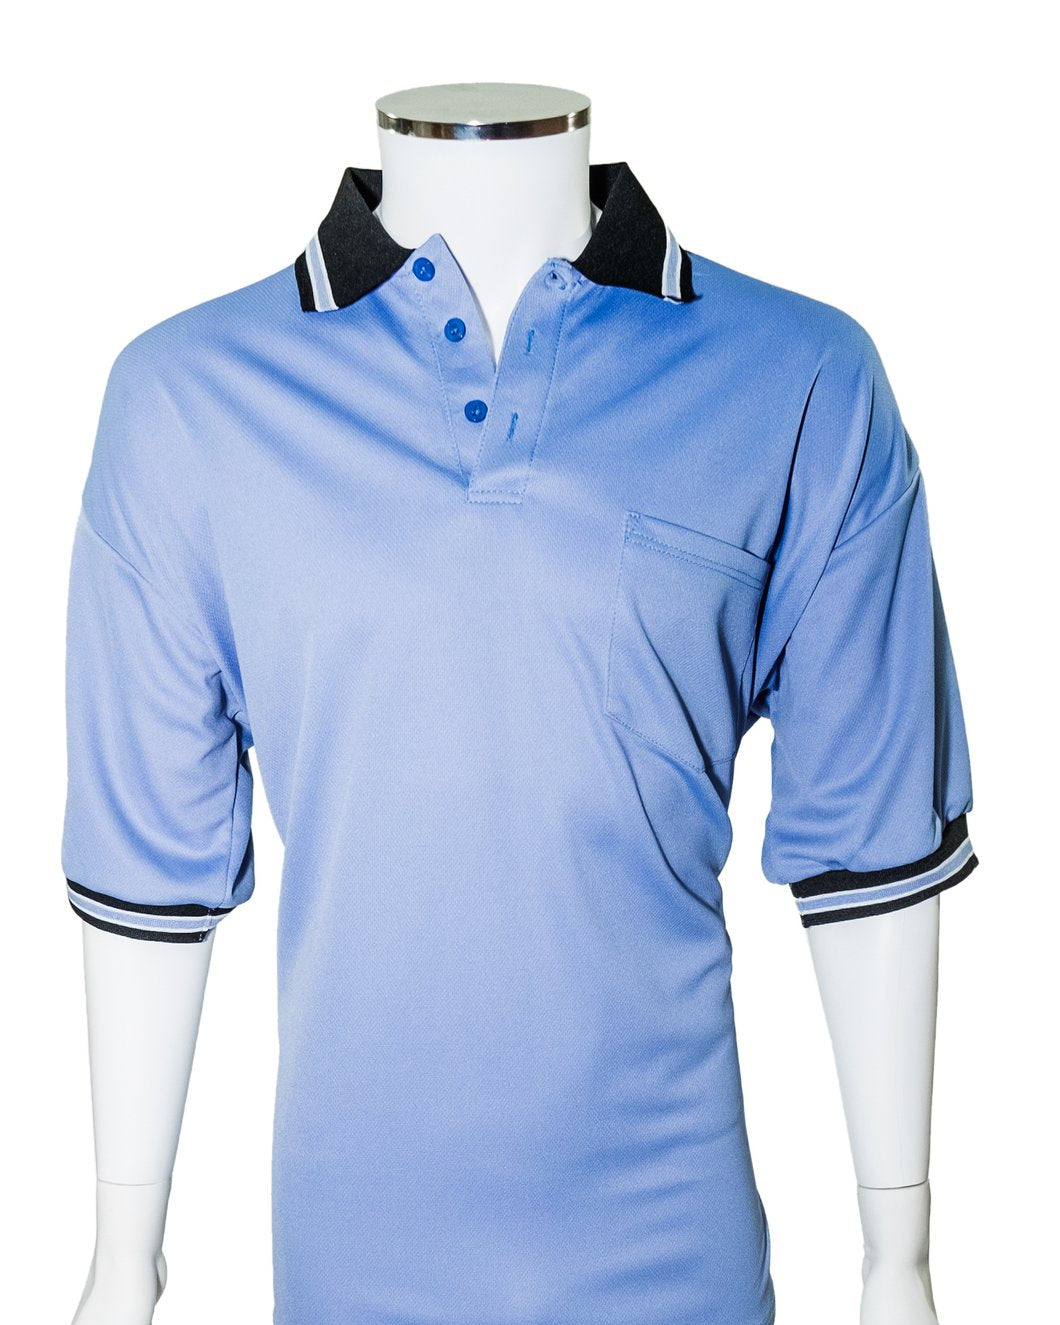 Major League Umpire Shirt - Polo Blue (CLEARANCE) - Officials Depot